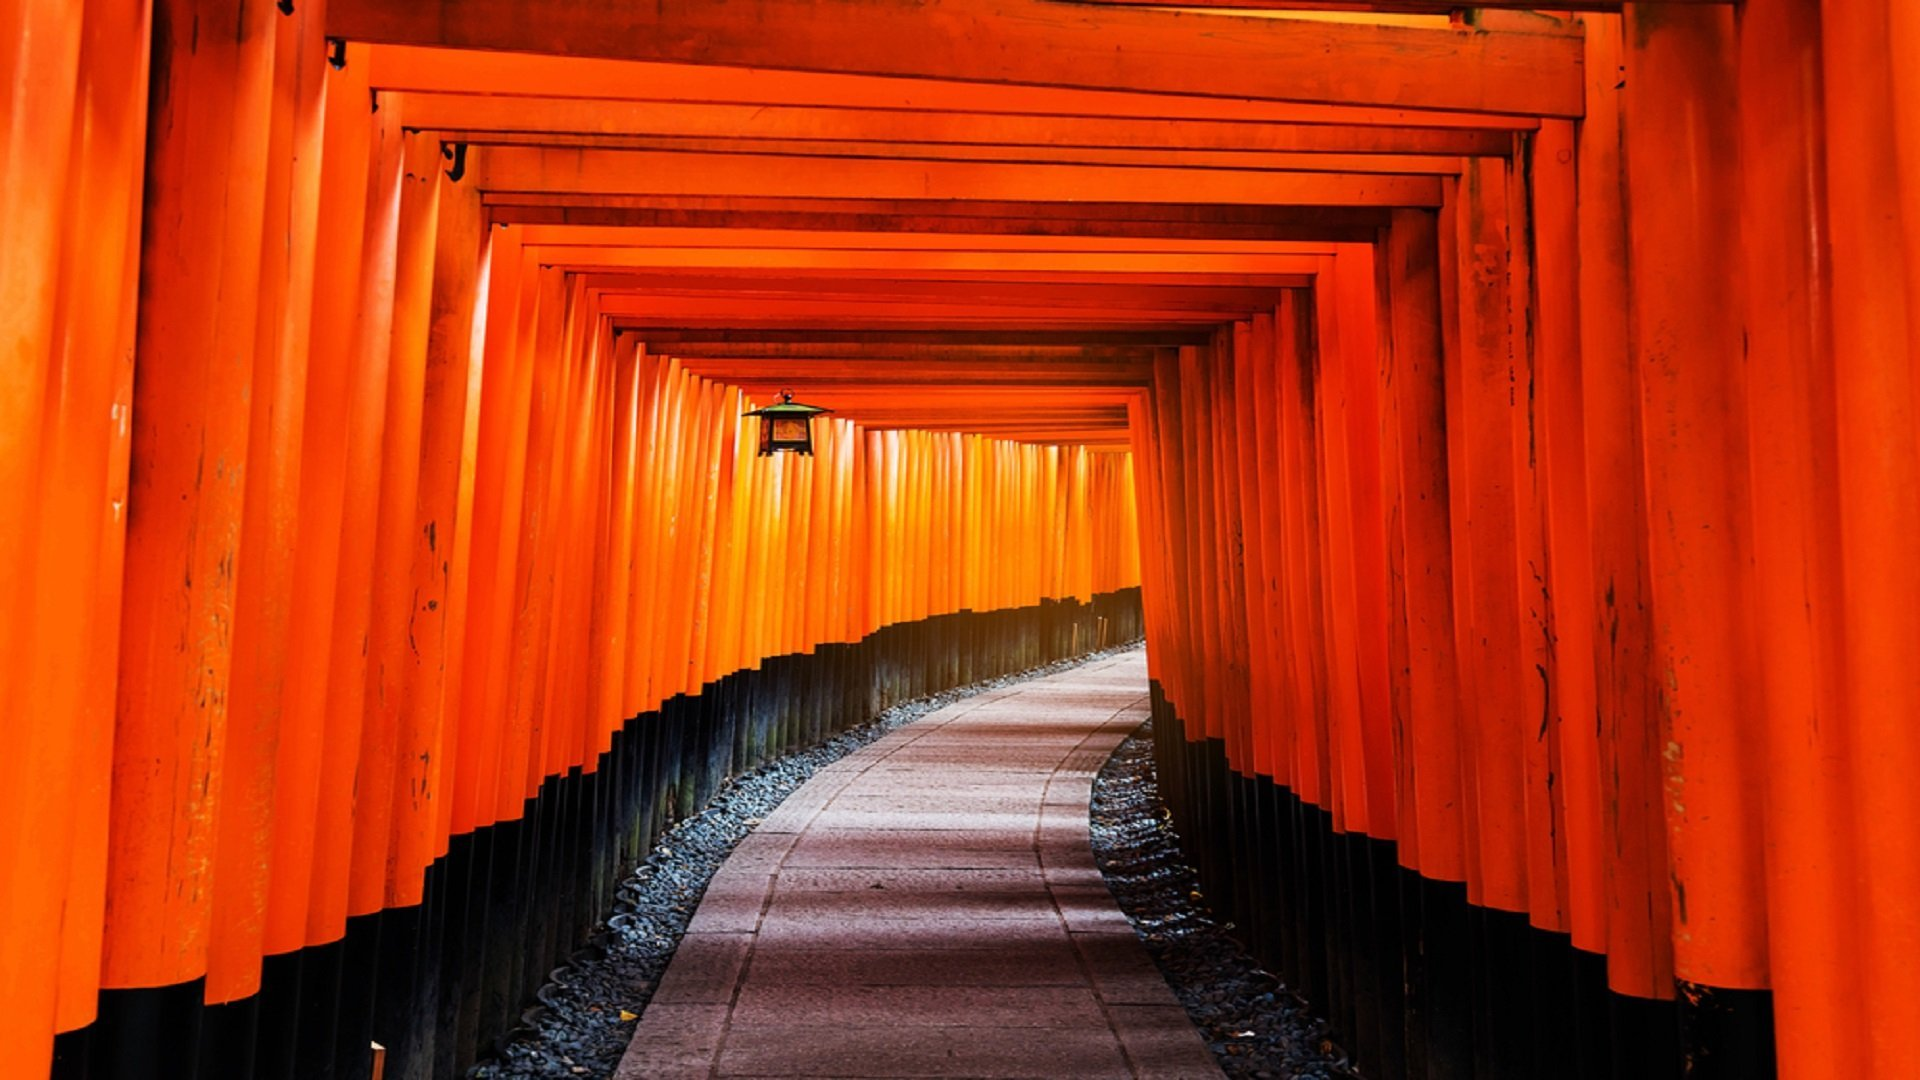 The Ultimate Vacation Travel Guide To Kyoto Zen Tripstar Solotravel Doyoutravel Welltravelled Lovetotravel